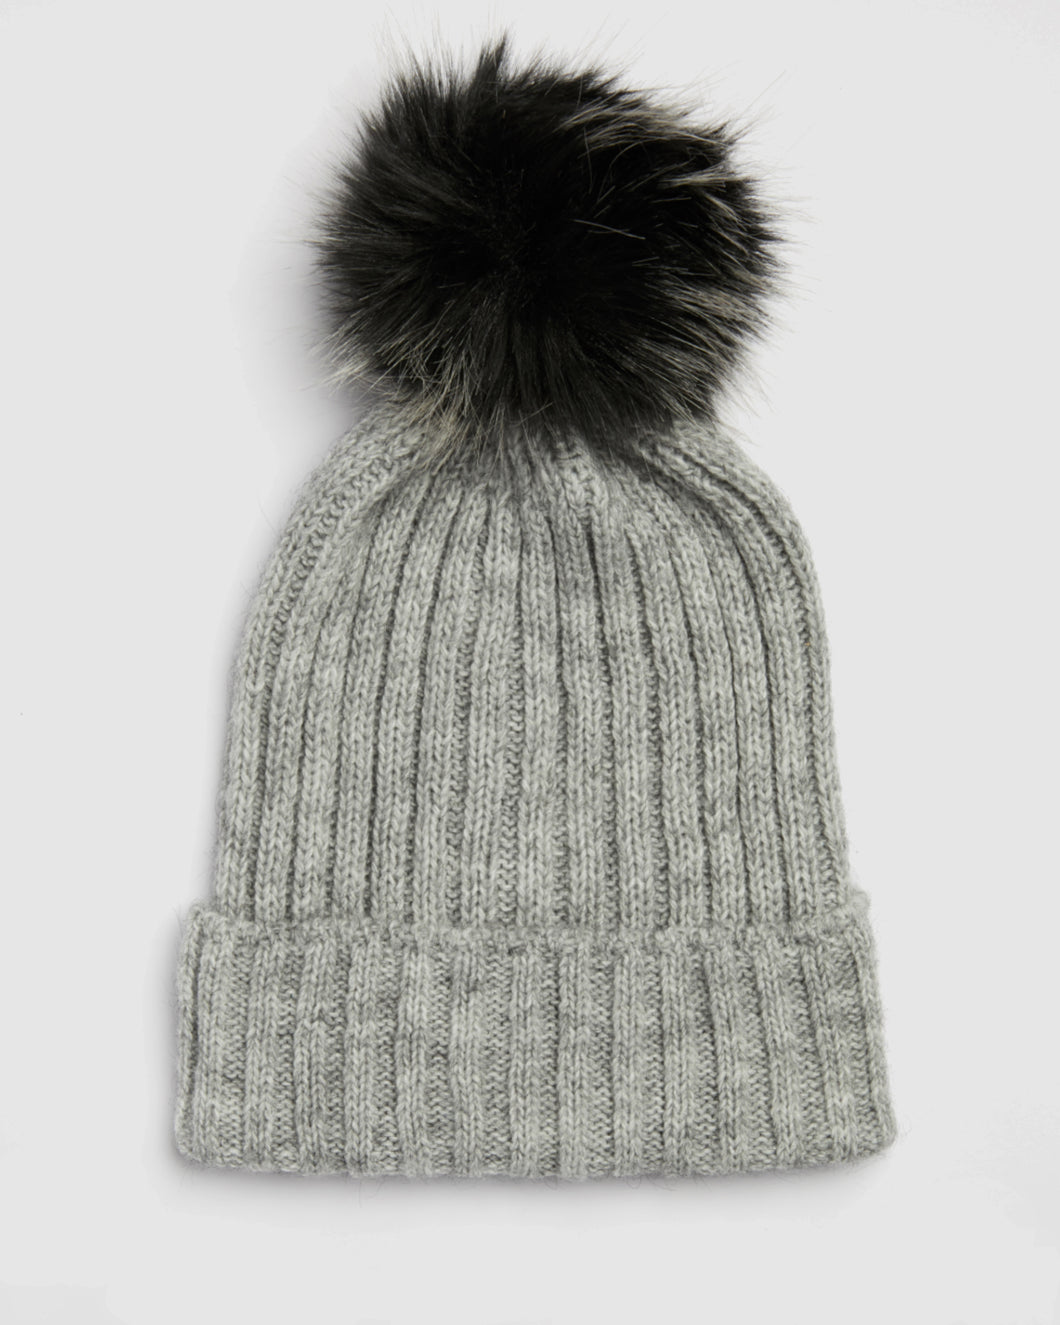 Kate and Confusion soft grey wool rib ladies beanie with faux fur pompom